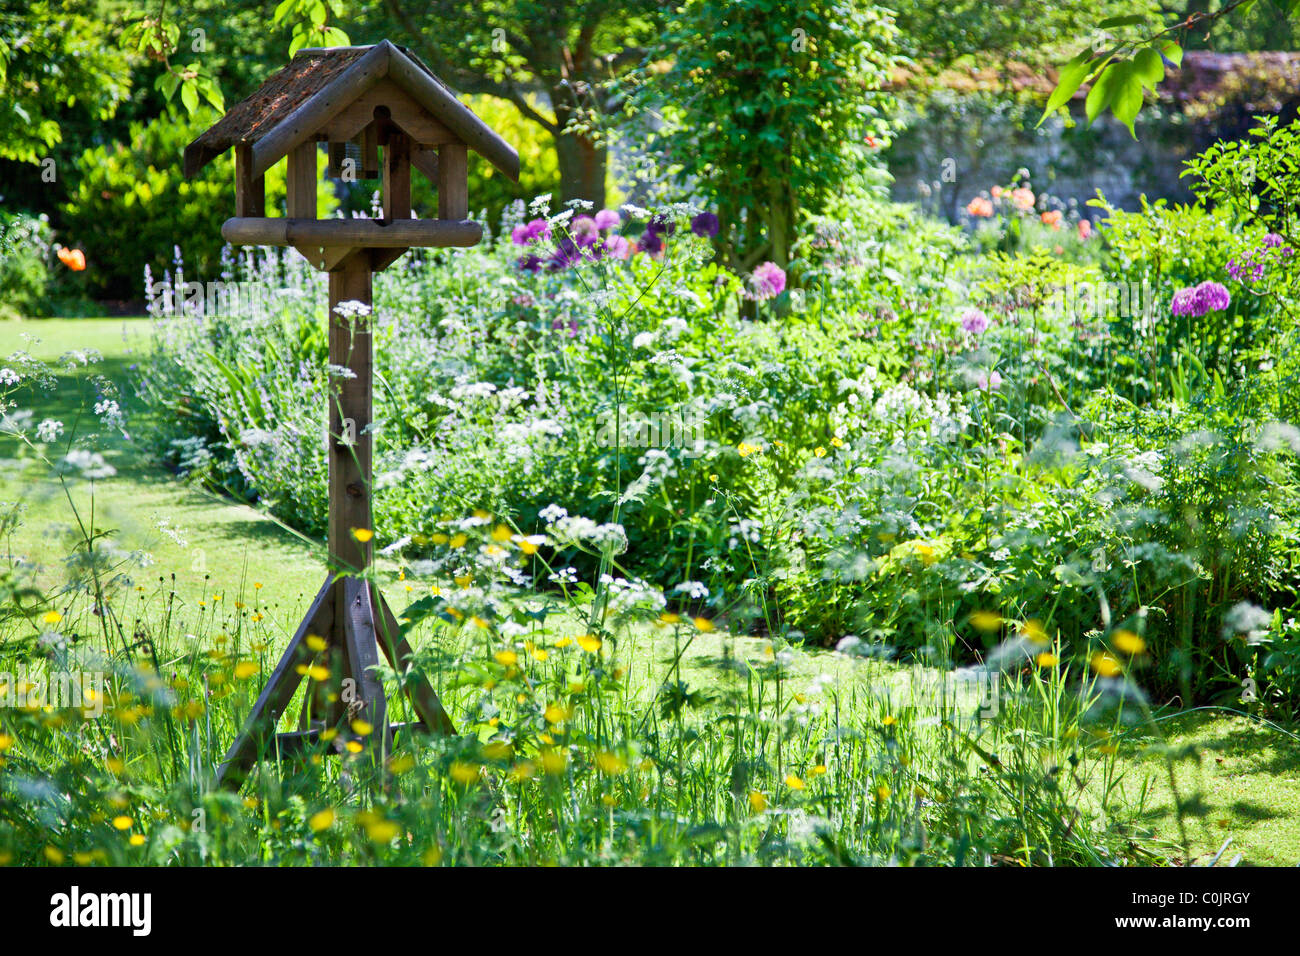 A Pretty Rustic Wooden Bird Table Set Amongst Flower Borders Or